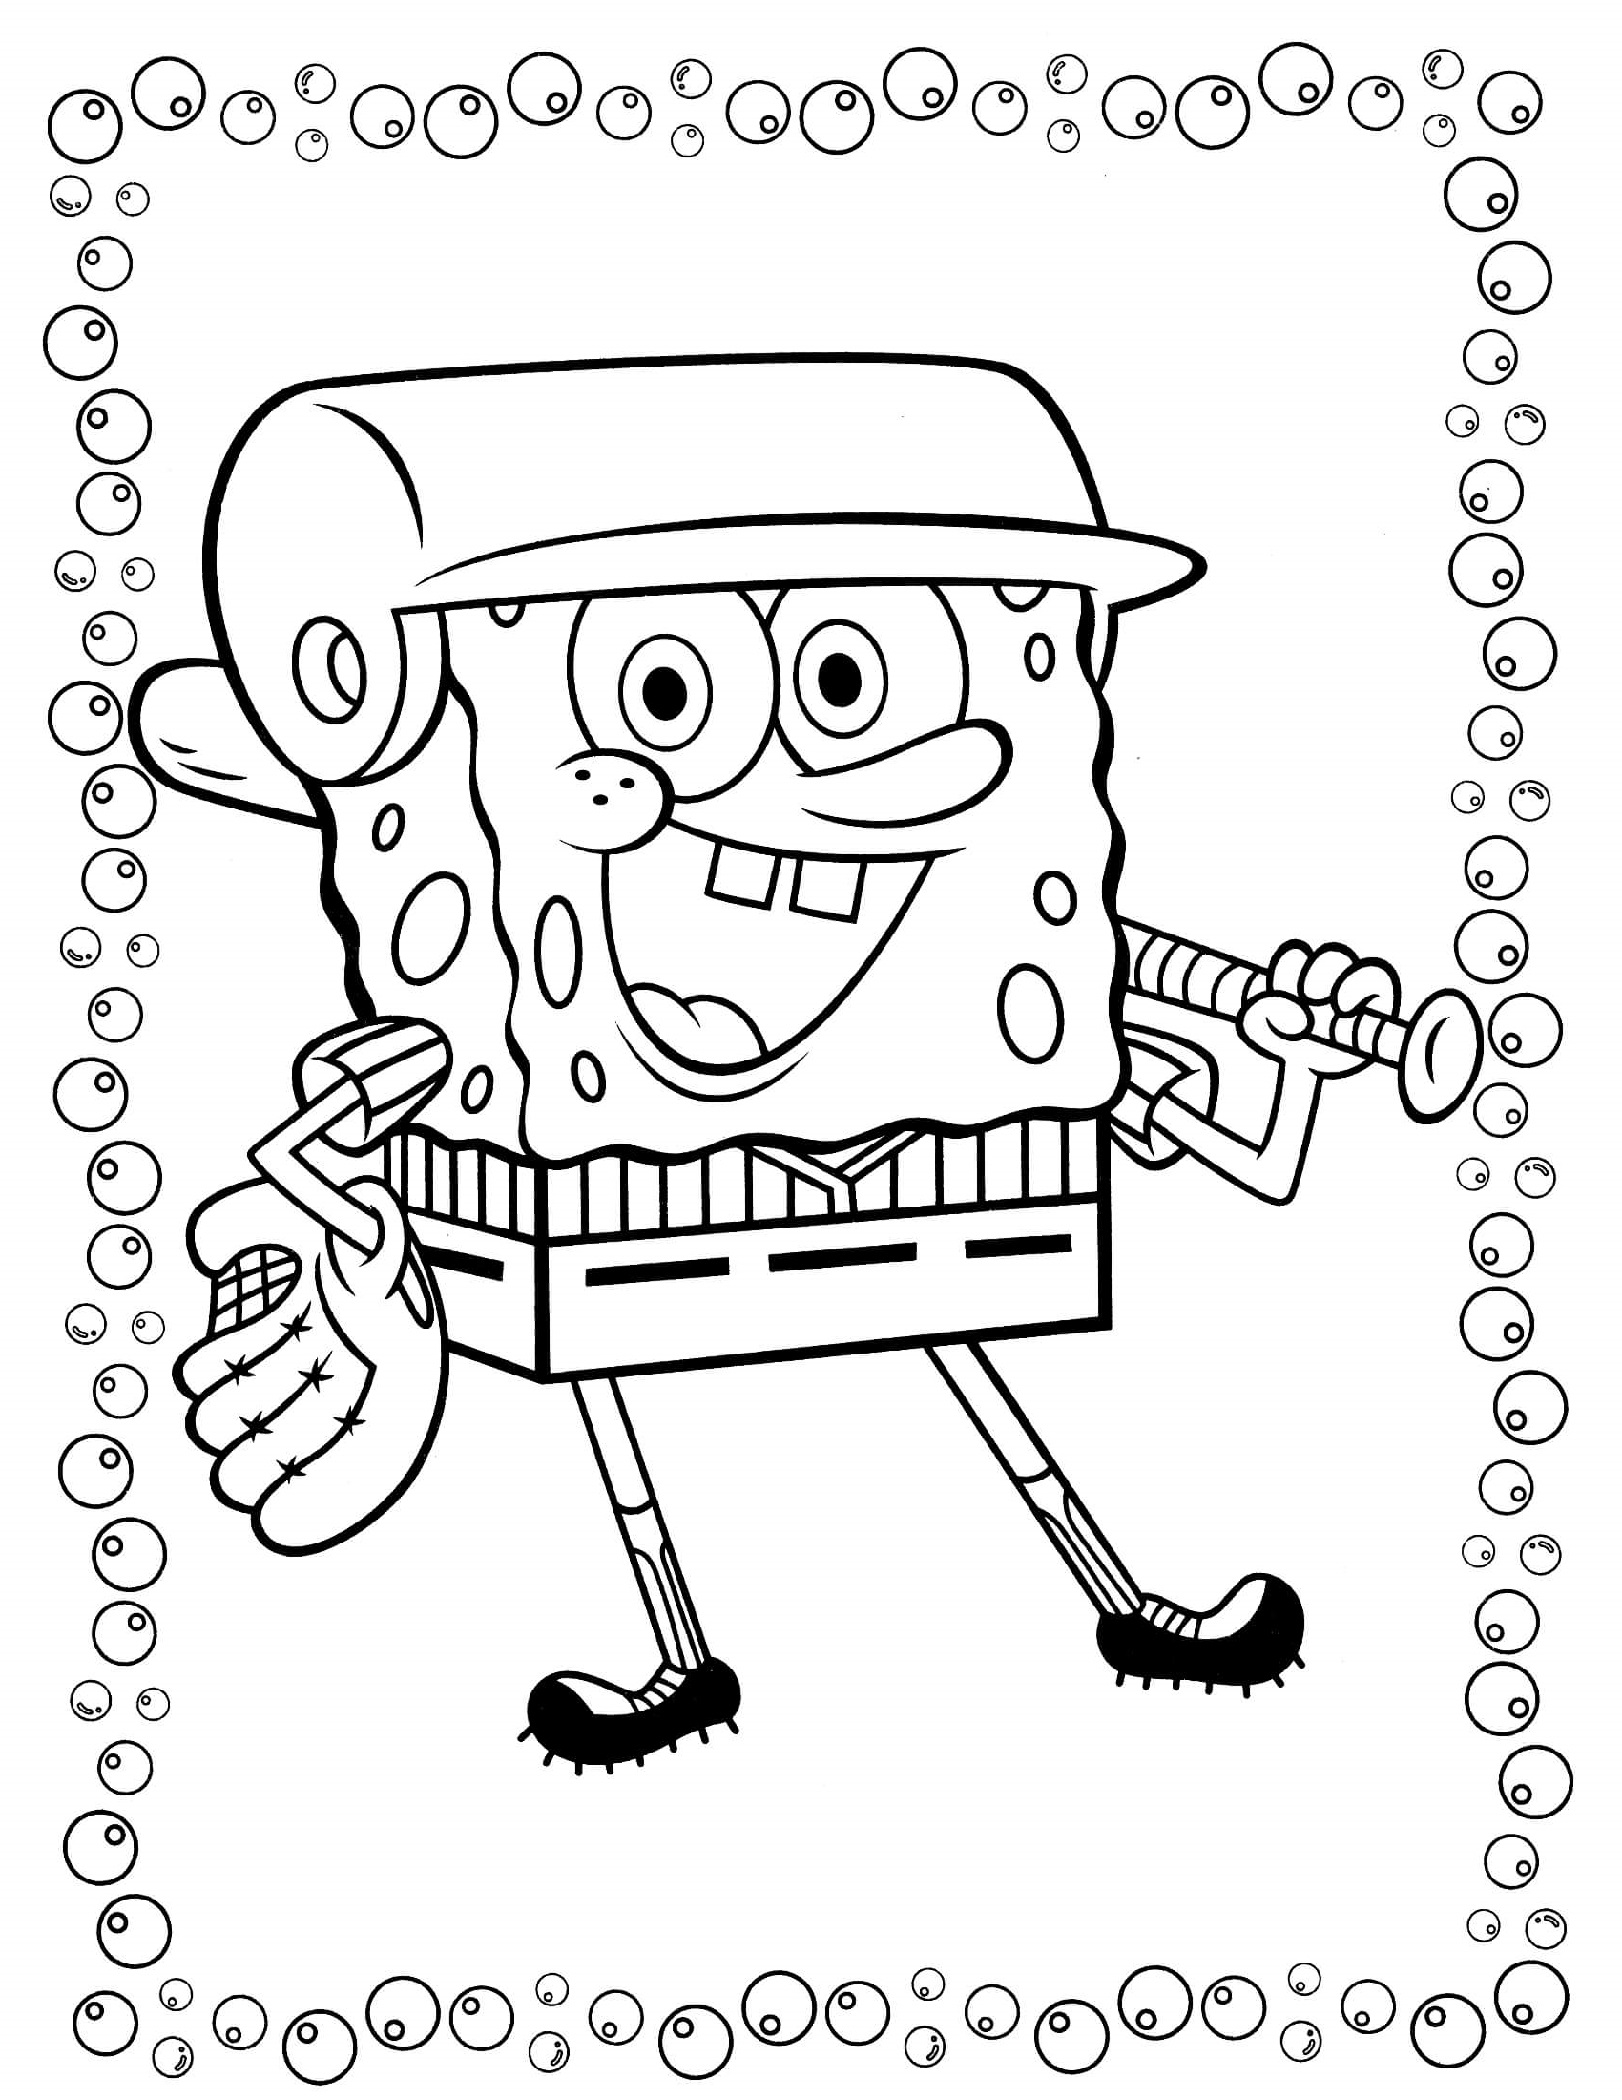 Spongebob Coloring Pages Playing